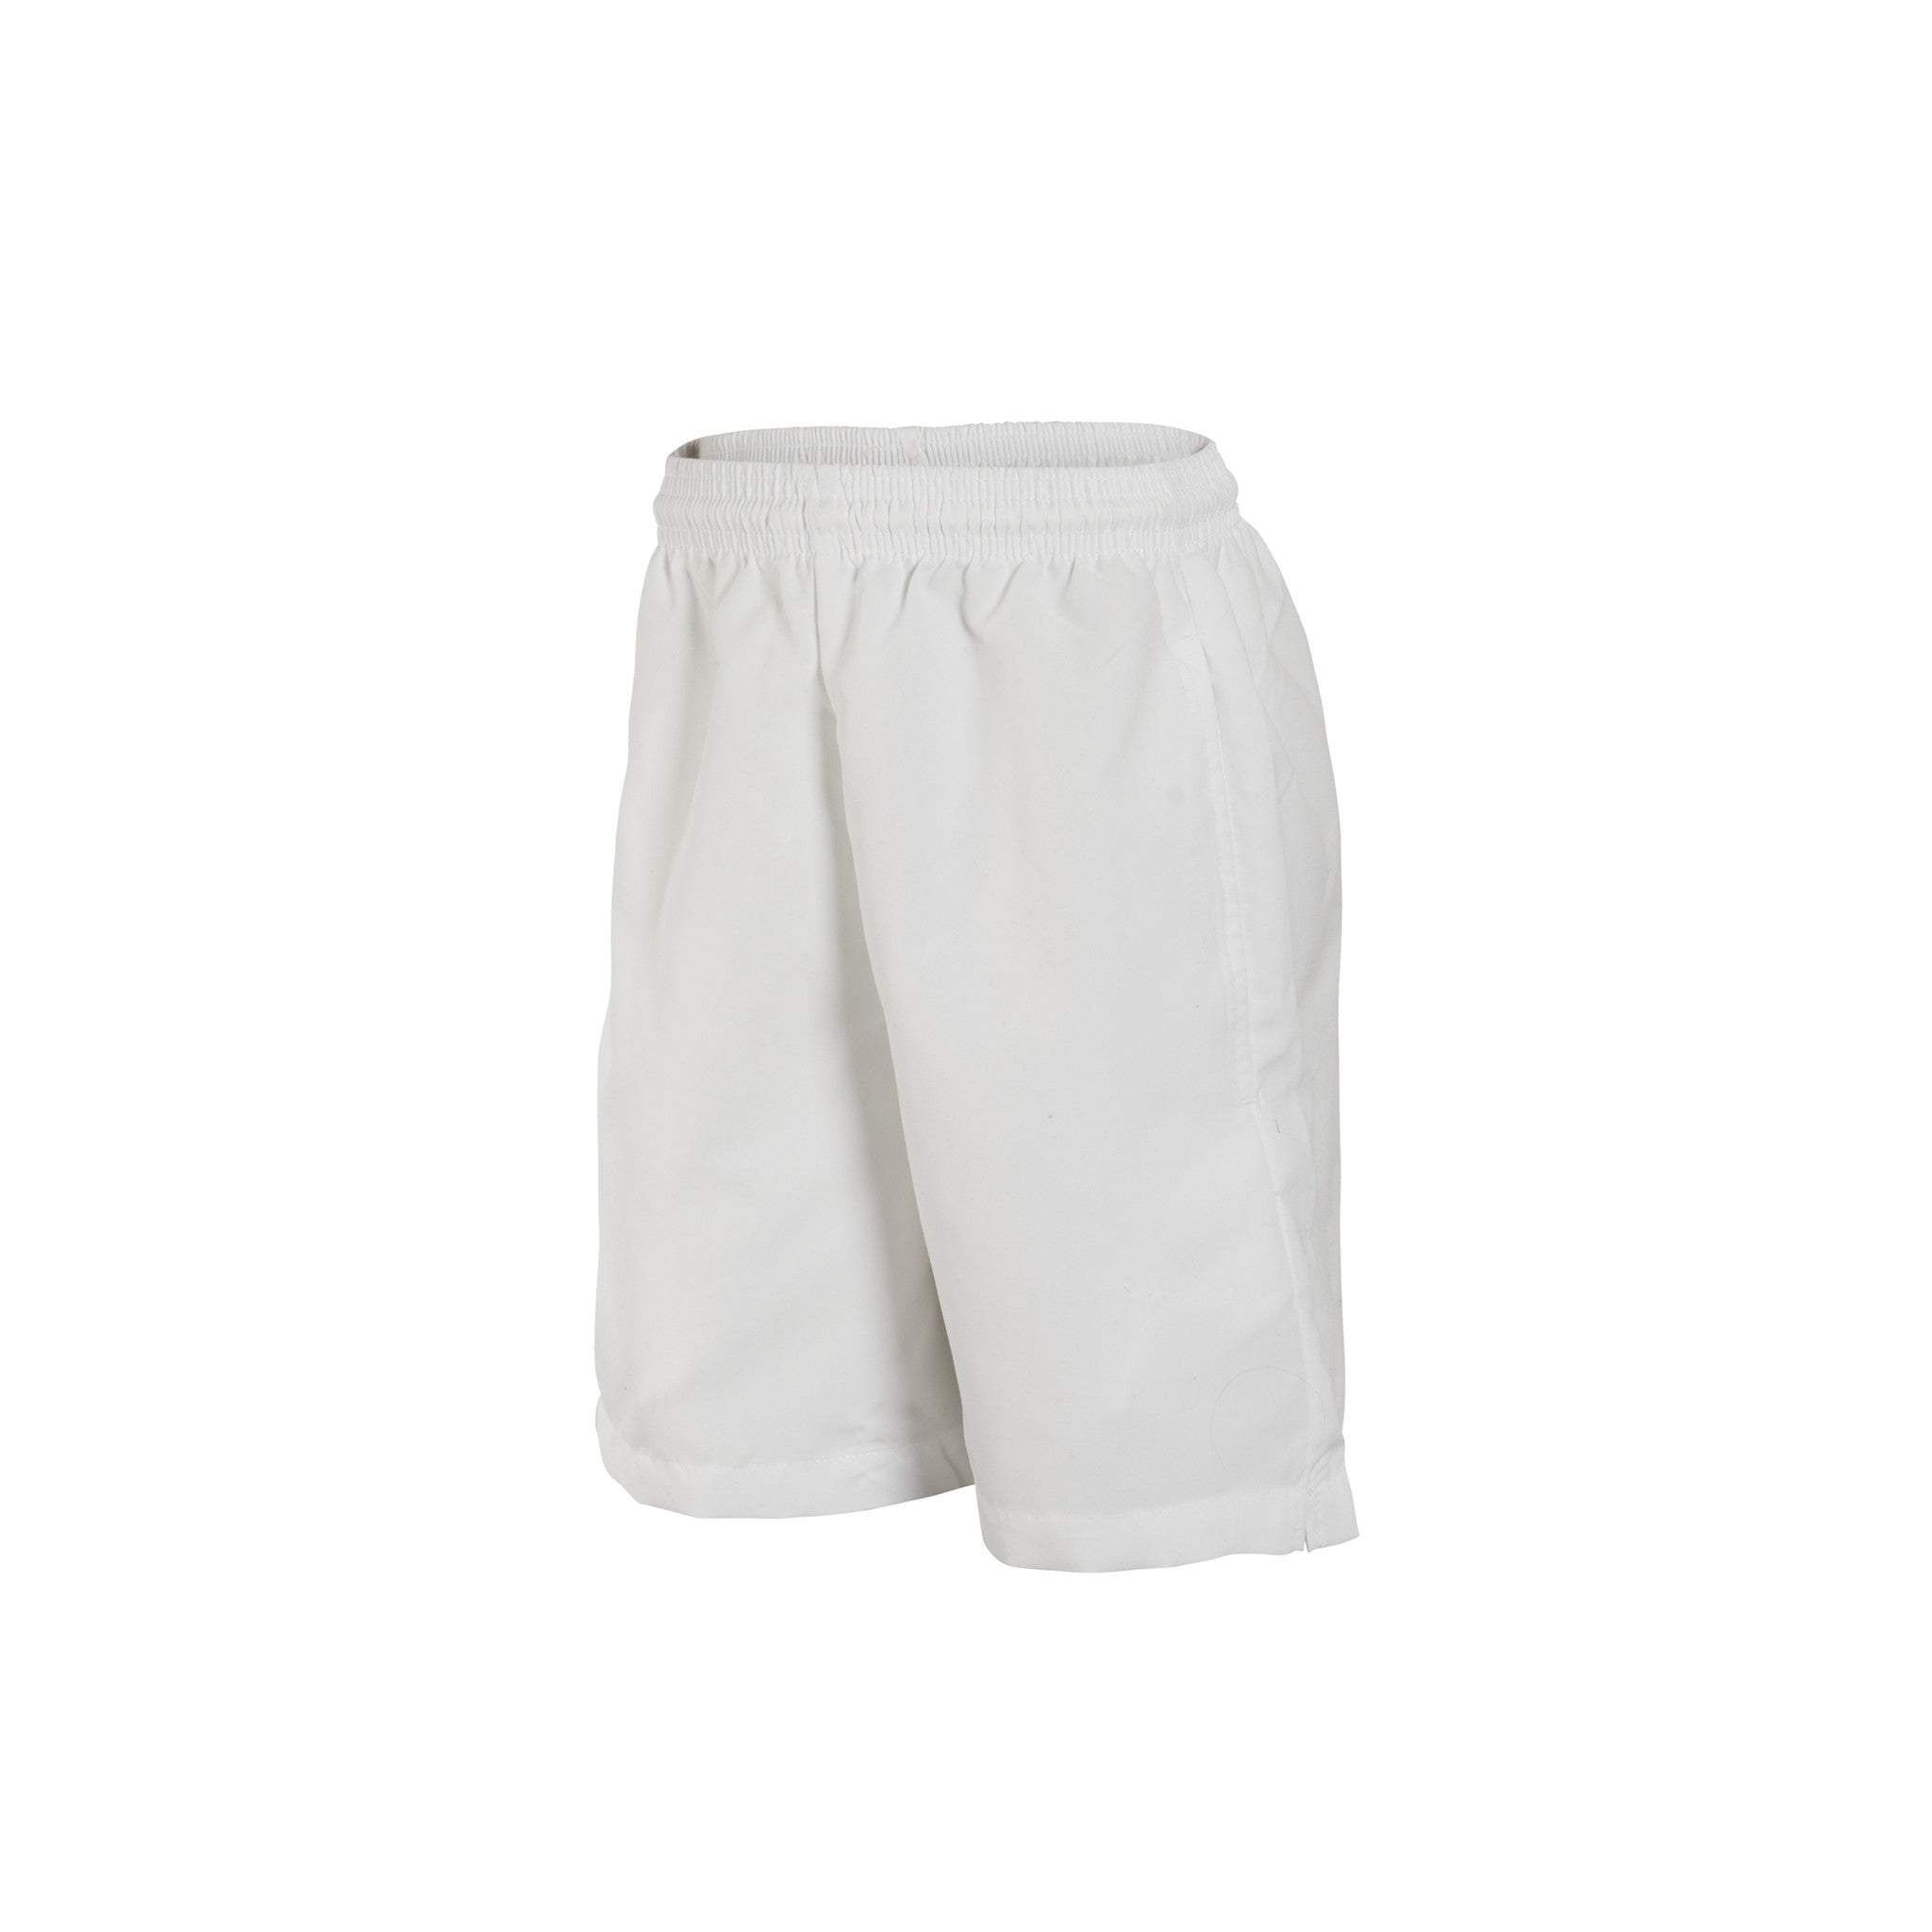 Prep Cricket Shorts